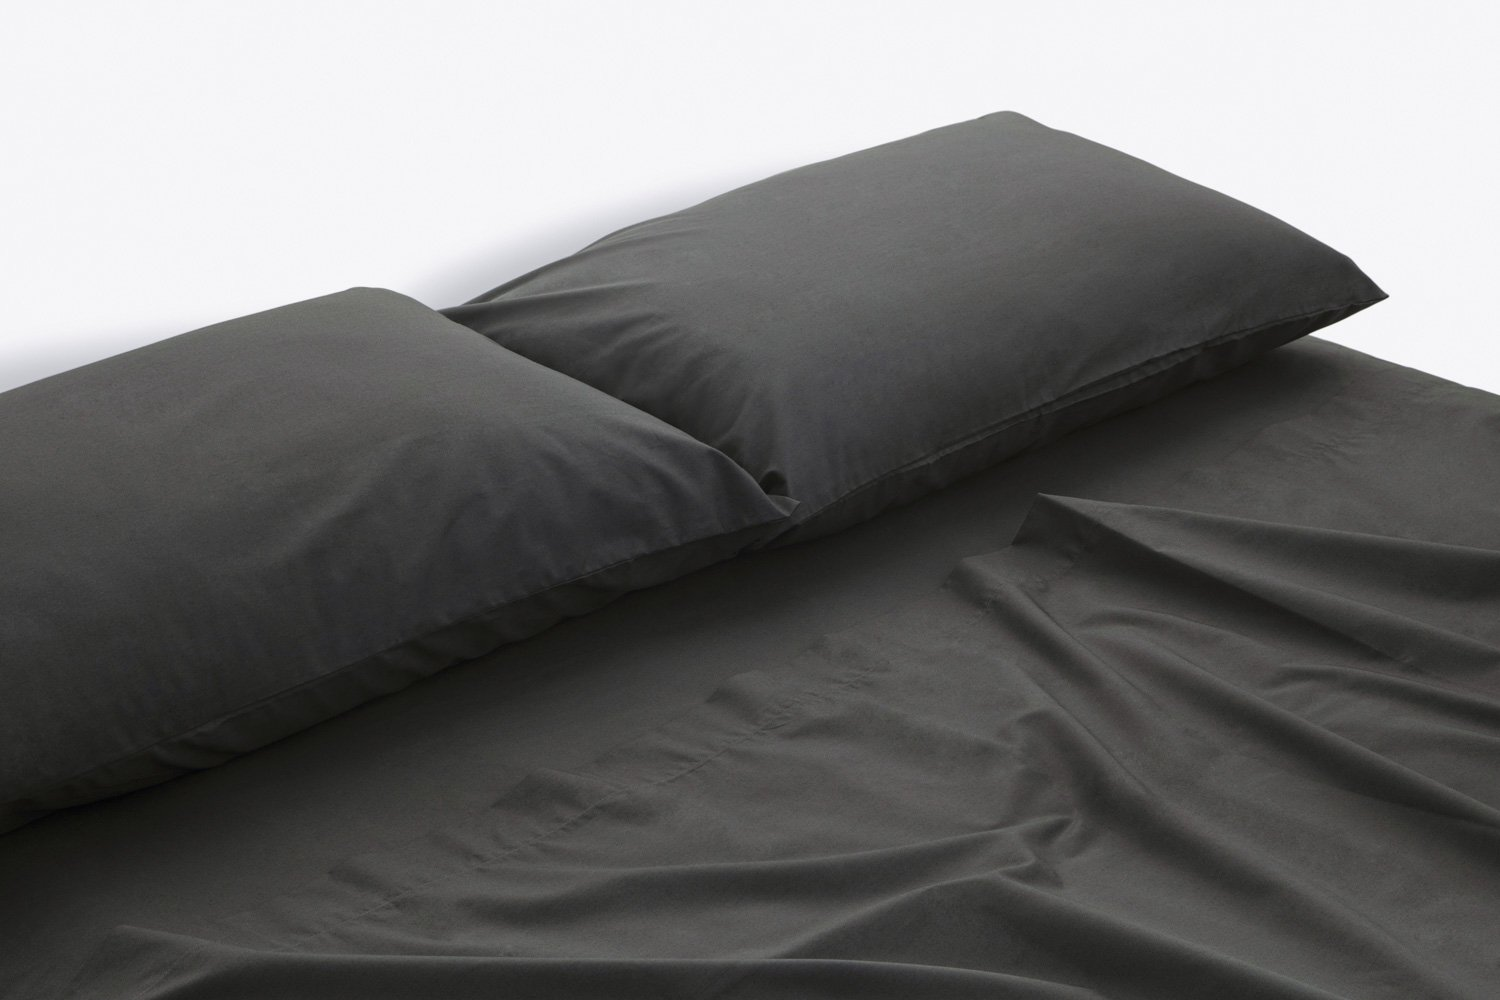 cotton percale sheeting in charcoal colour